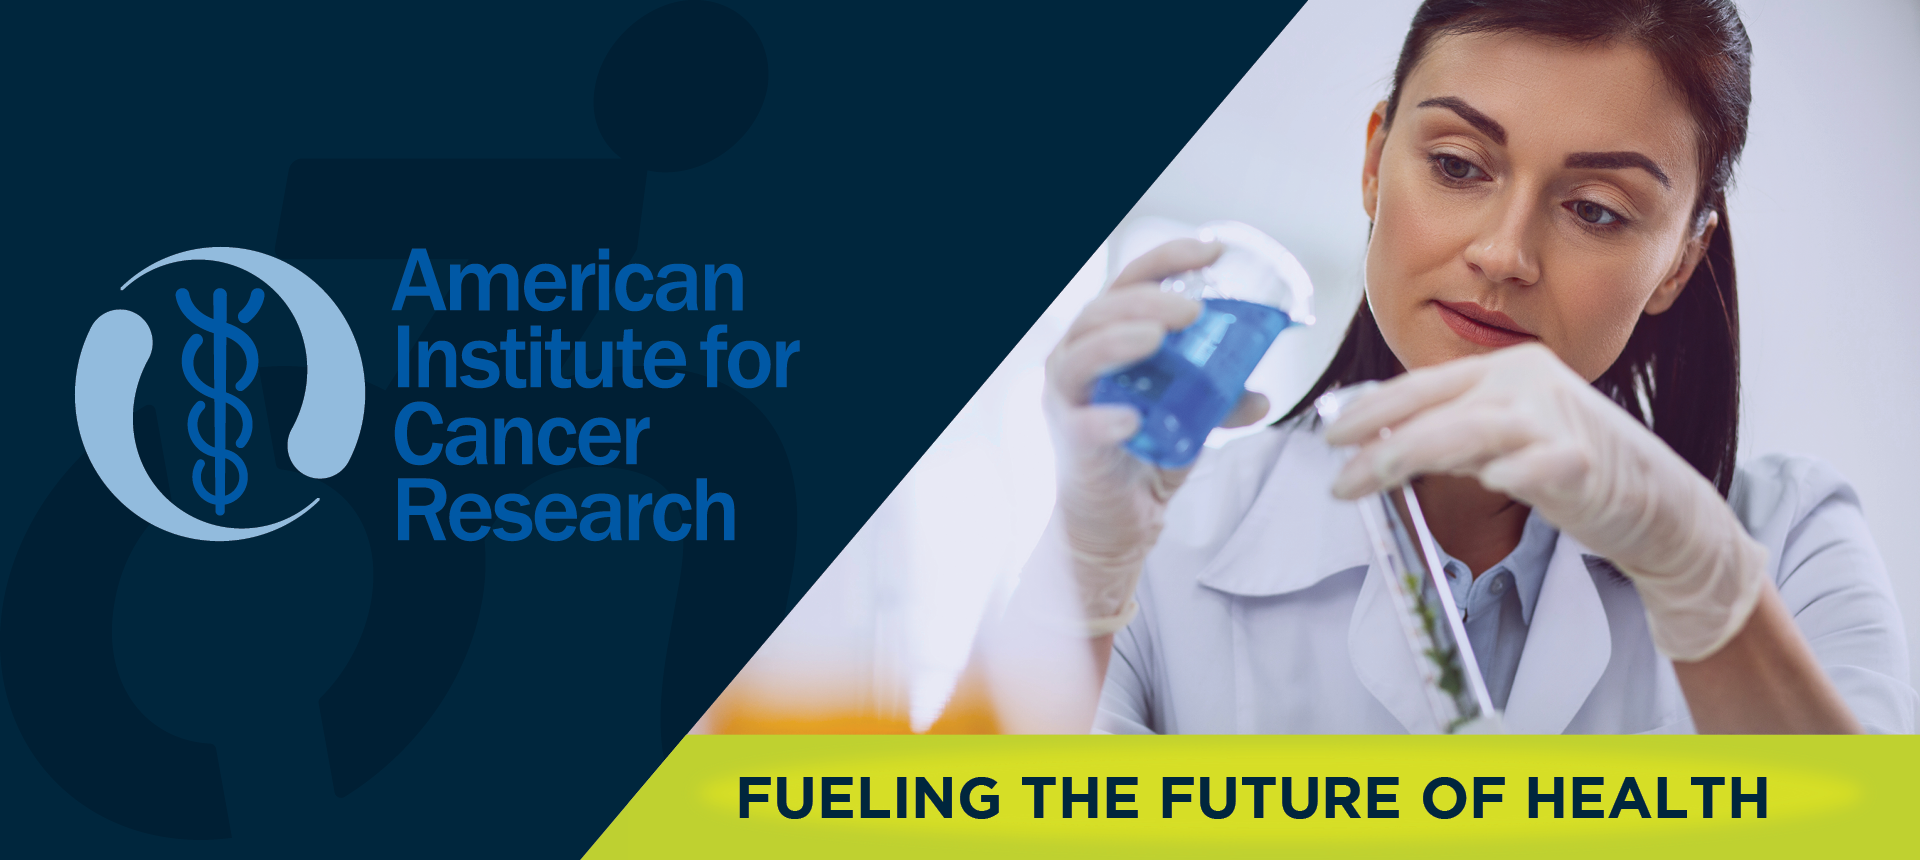 On left side of image, the American Institute for Cancer Research logo. On right side of the image, a scientist woman wearing gloves and a lab-coat, while holding test tubes.  Underneath, the image reads: FUELING THE FUTURE OF HEALTH